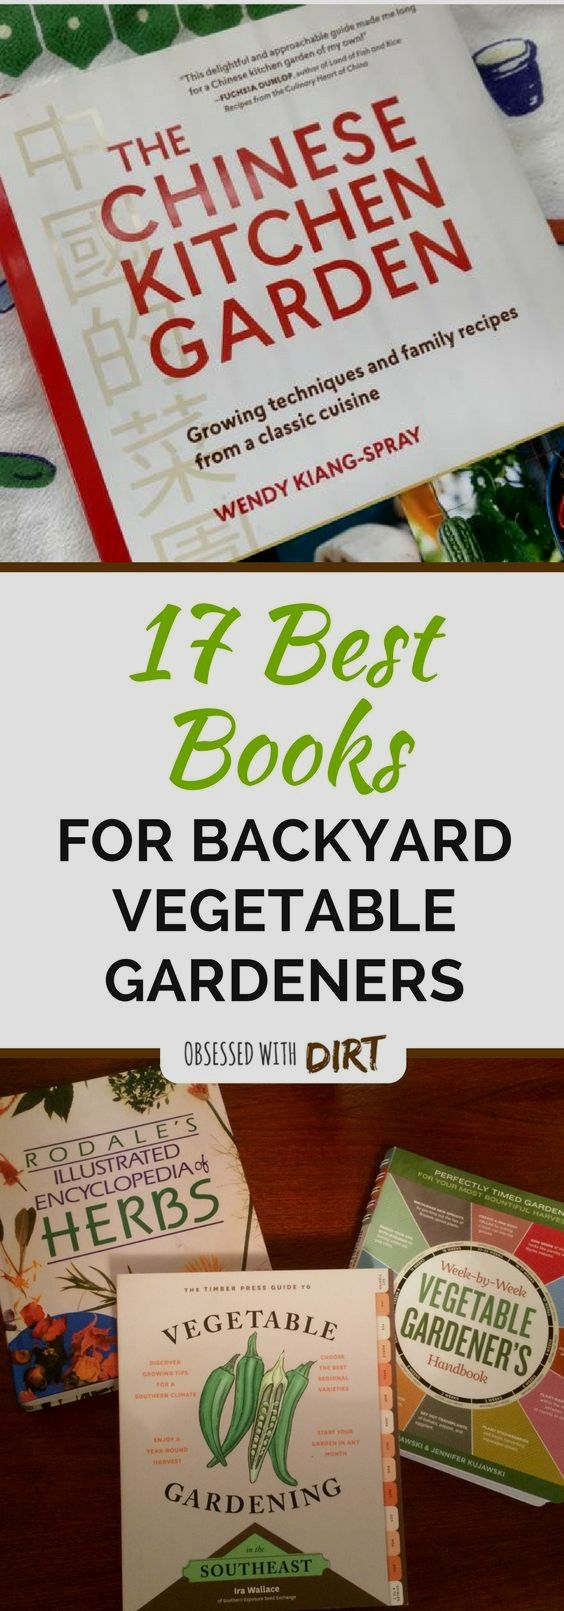 Easy Vegetable Garden Design Gardening For Beginners Growing Vegetables In Pots Vegetable Gardening Books